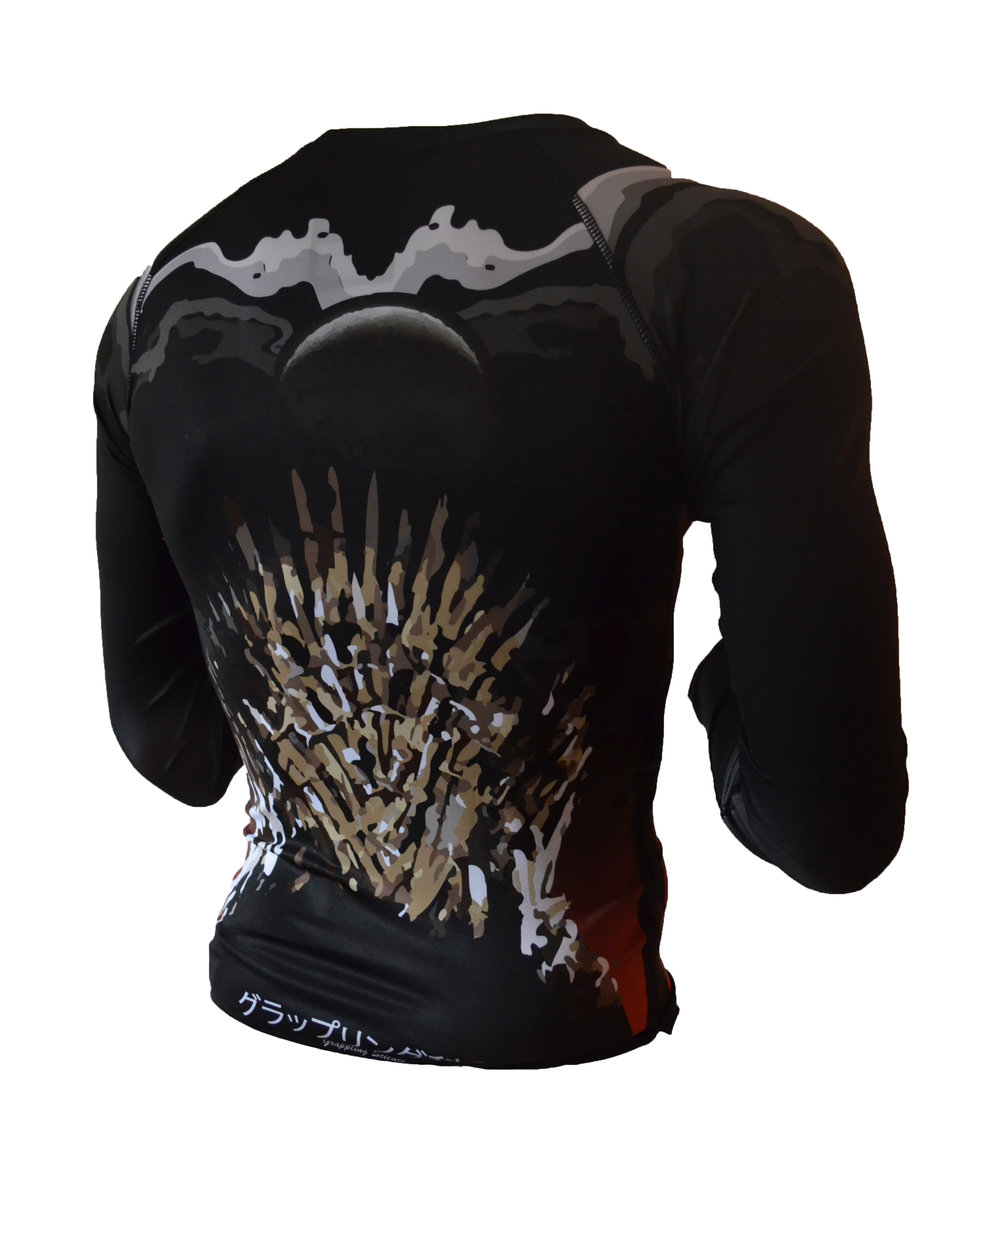 panda king rash guard right side.jpg